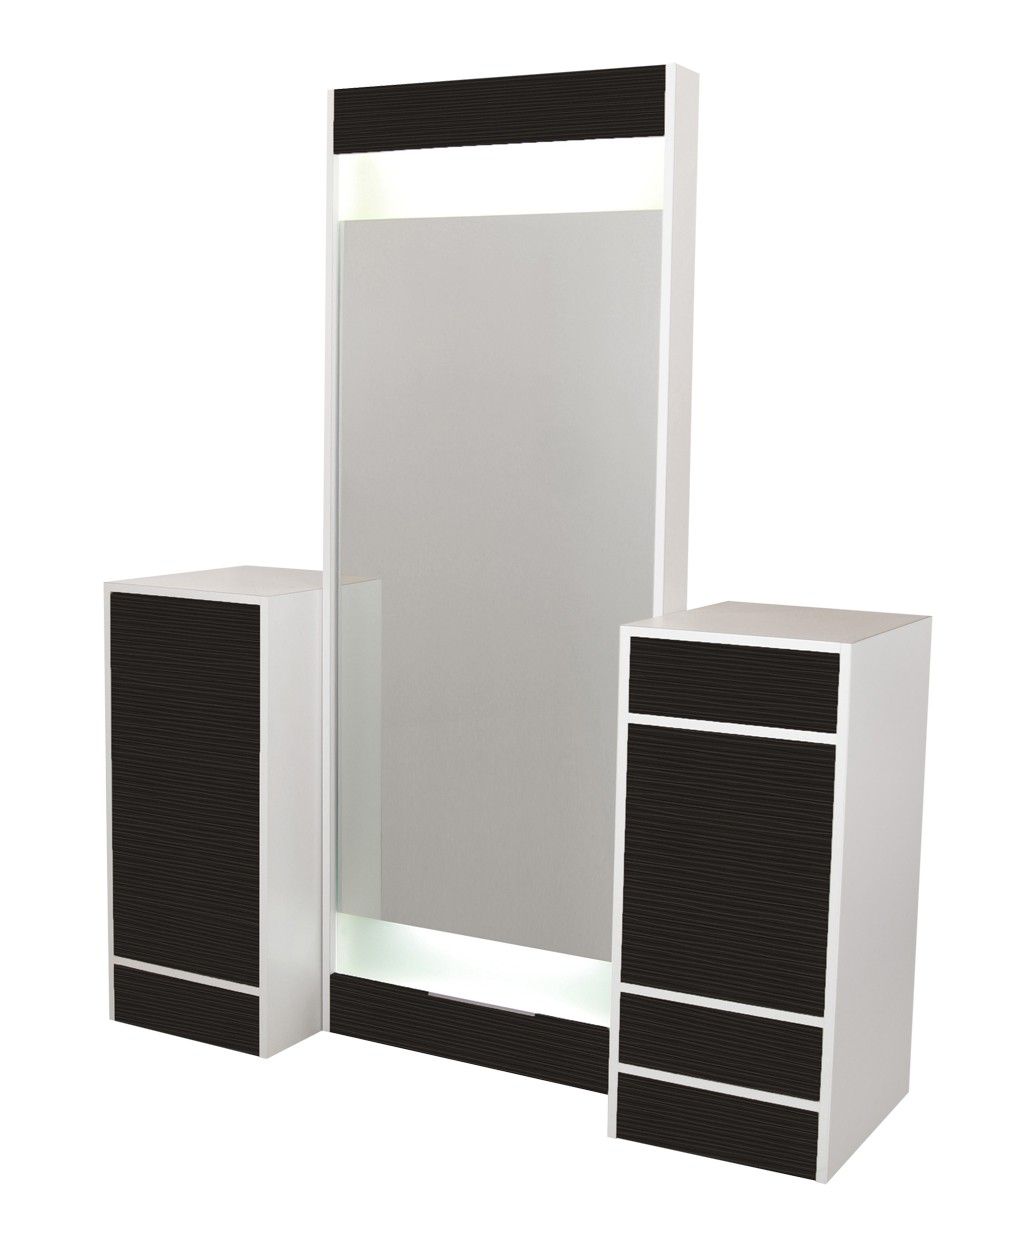 Collins 6623 Edge Back-to-Back Styling Vanity w/ Back-Lit Mirrors